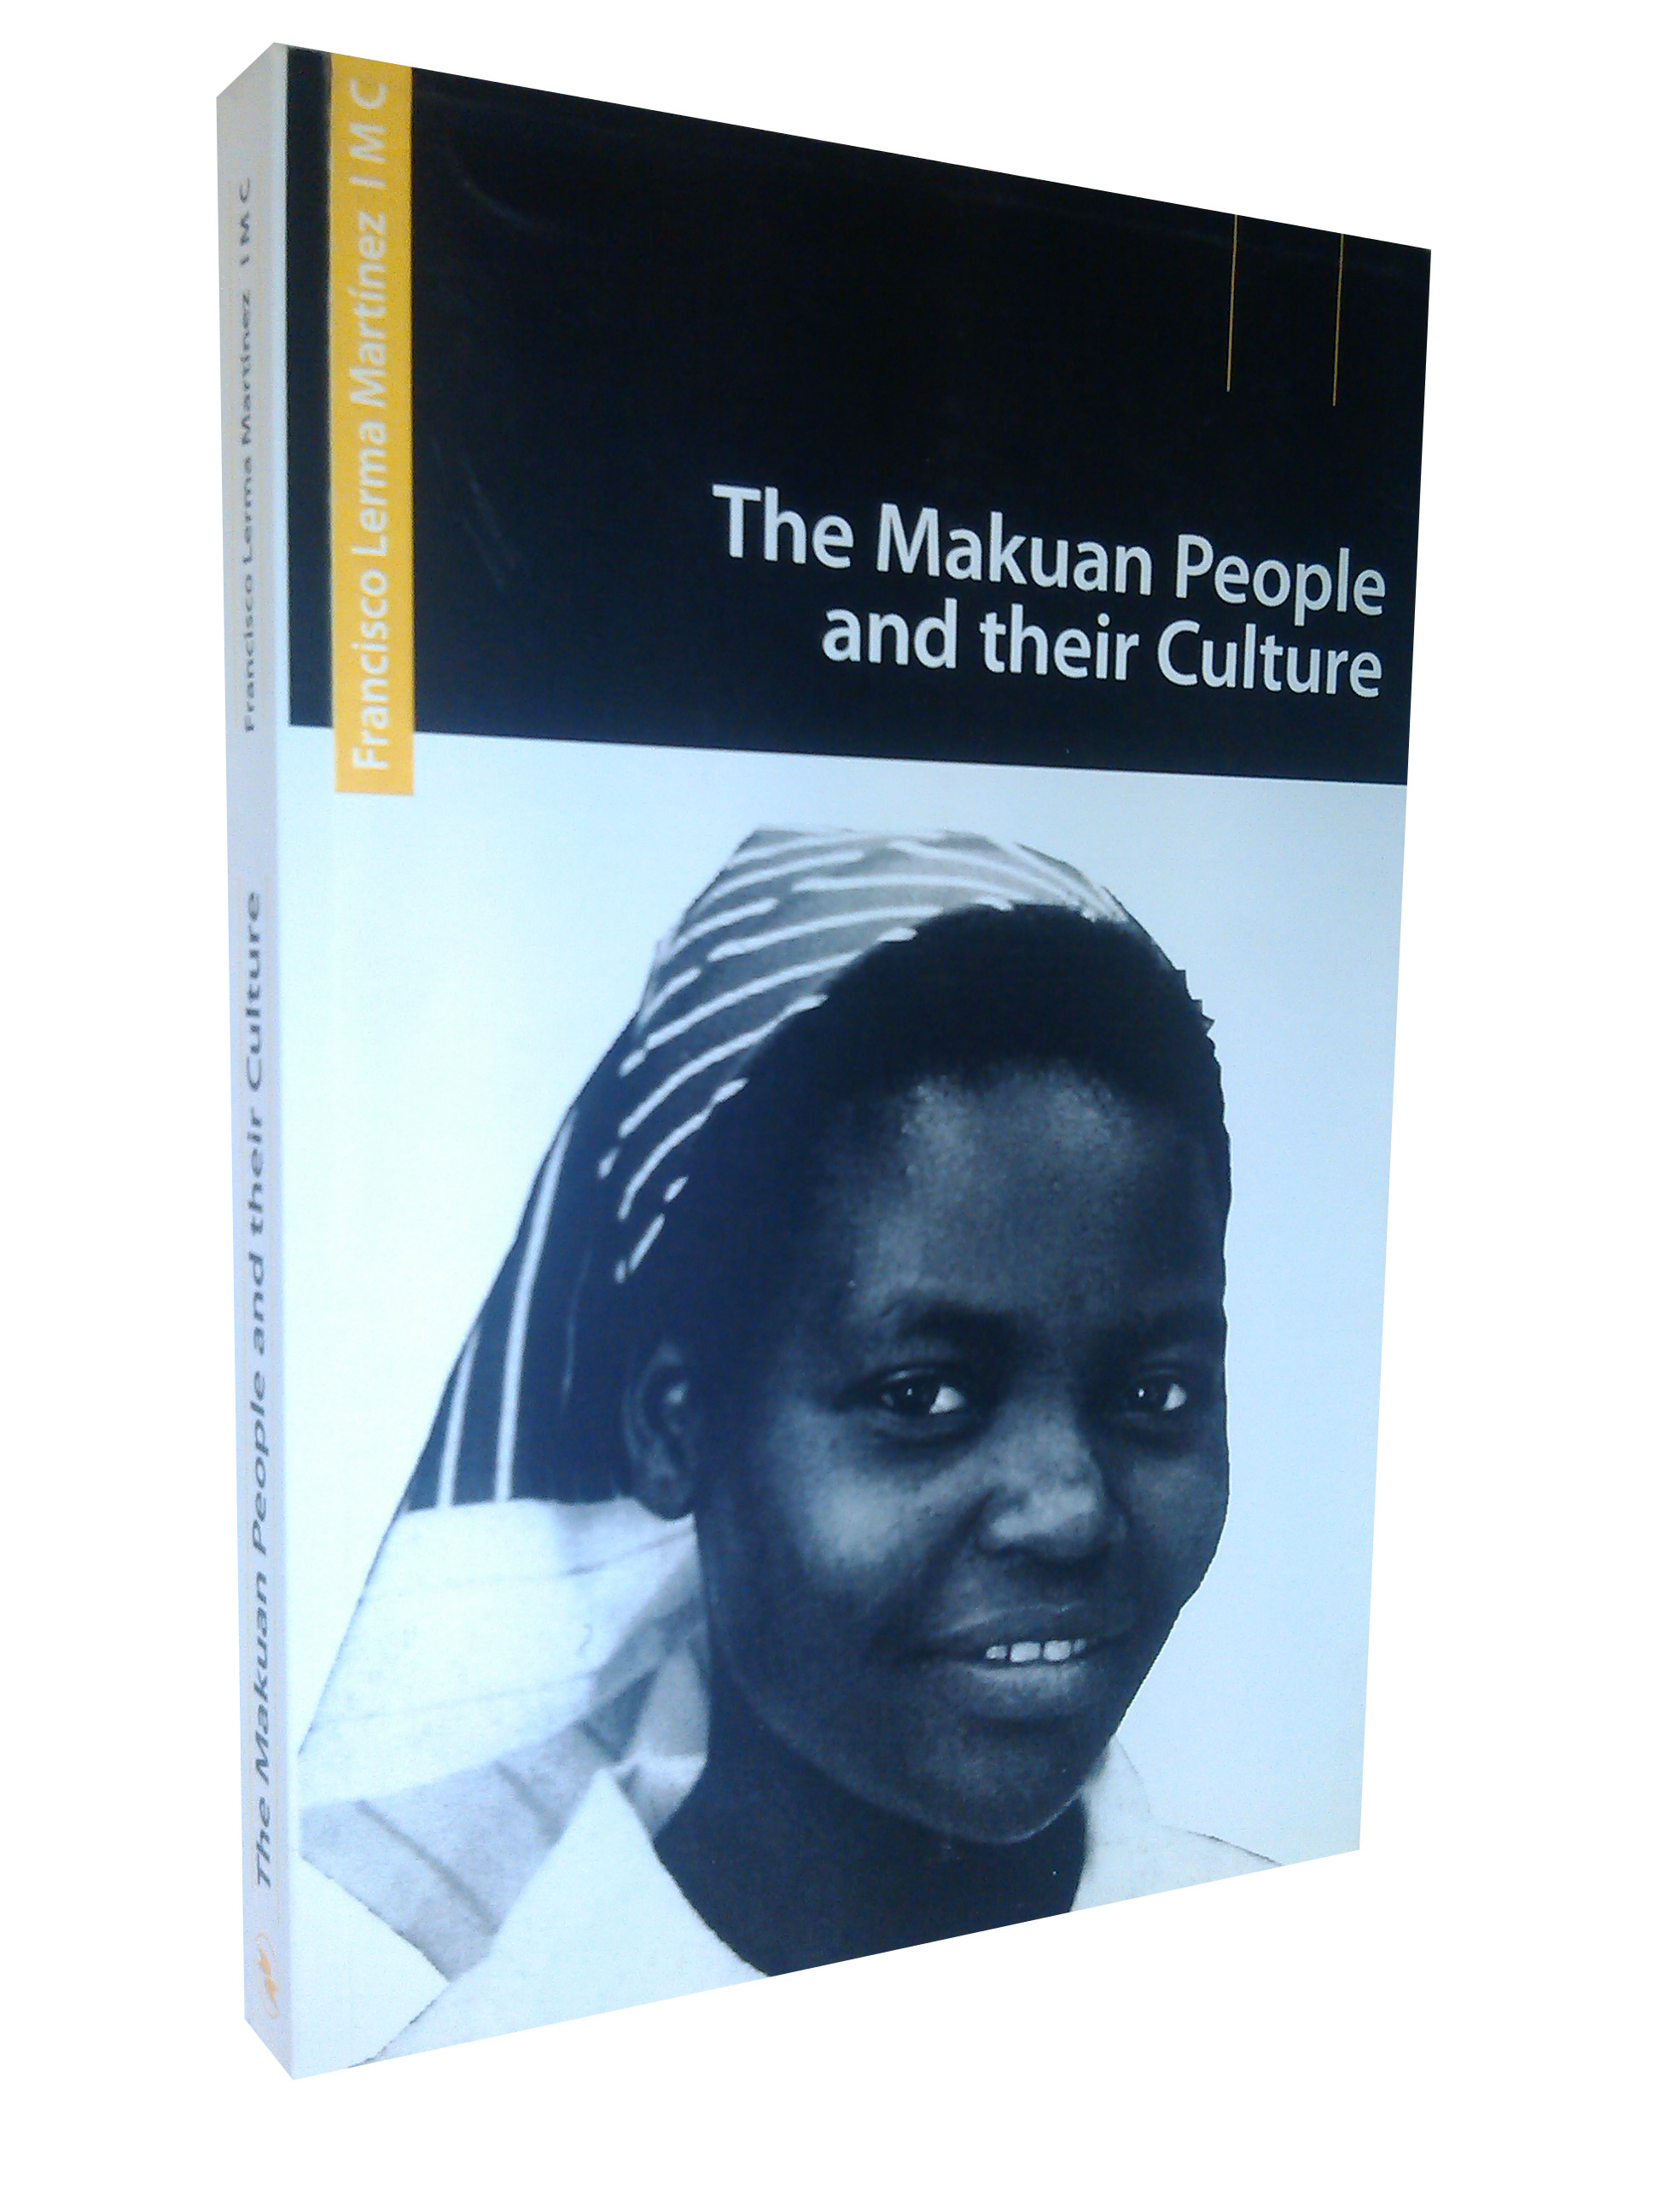 The Makuan people and their culture